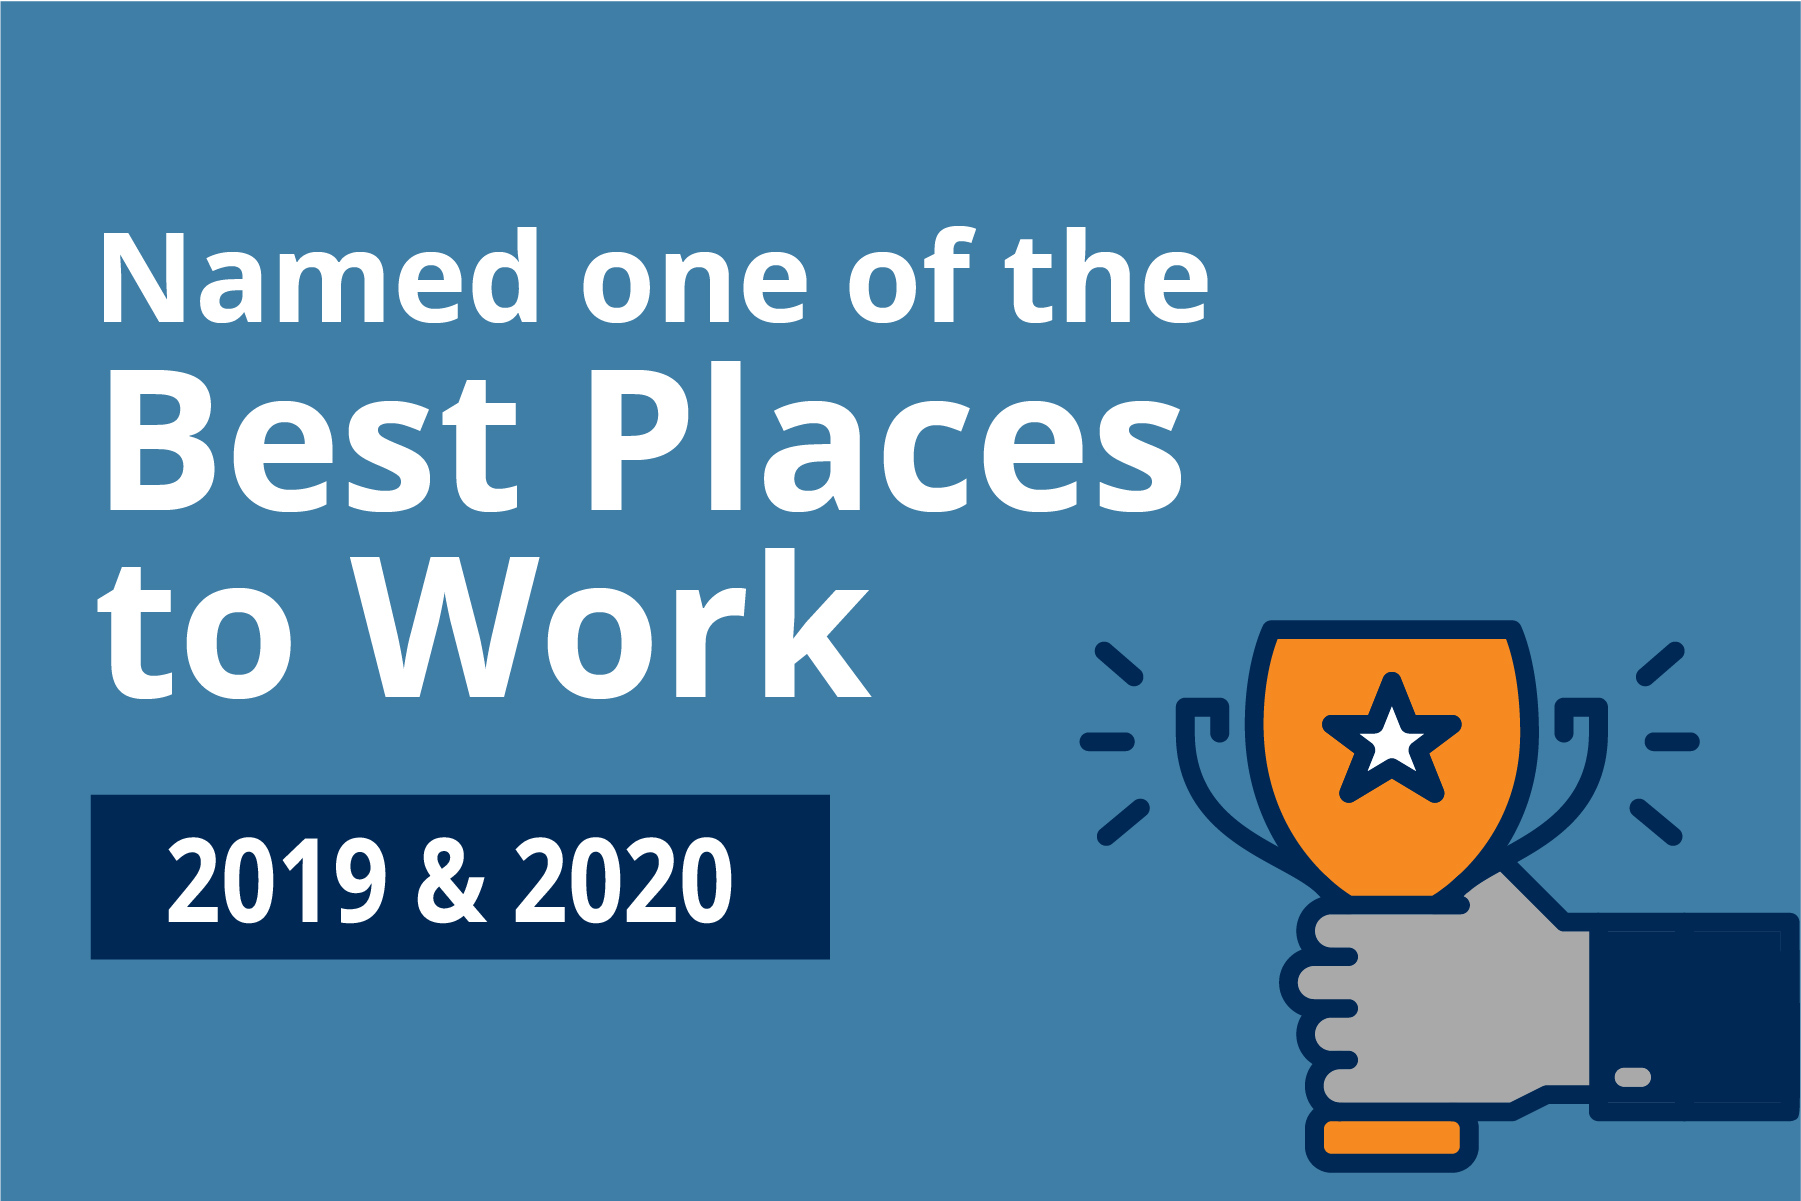 WorkSmart named one of the best places to work in 2020.